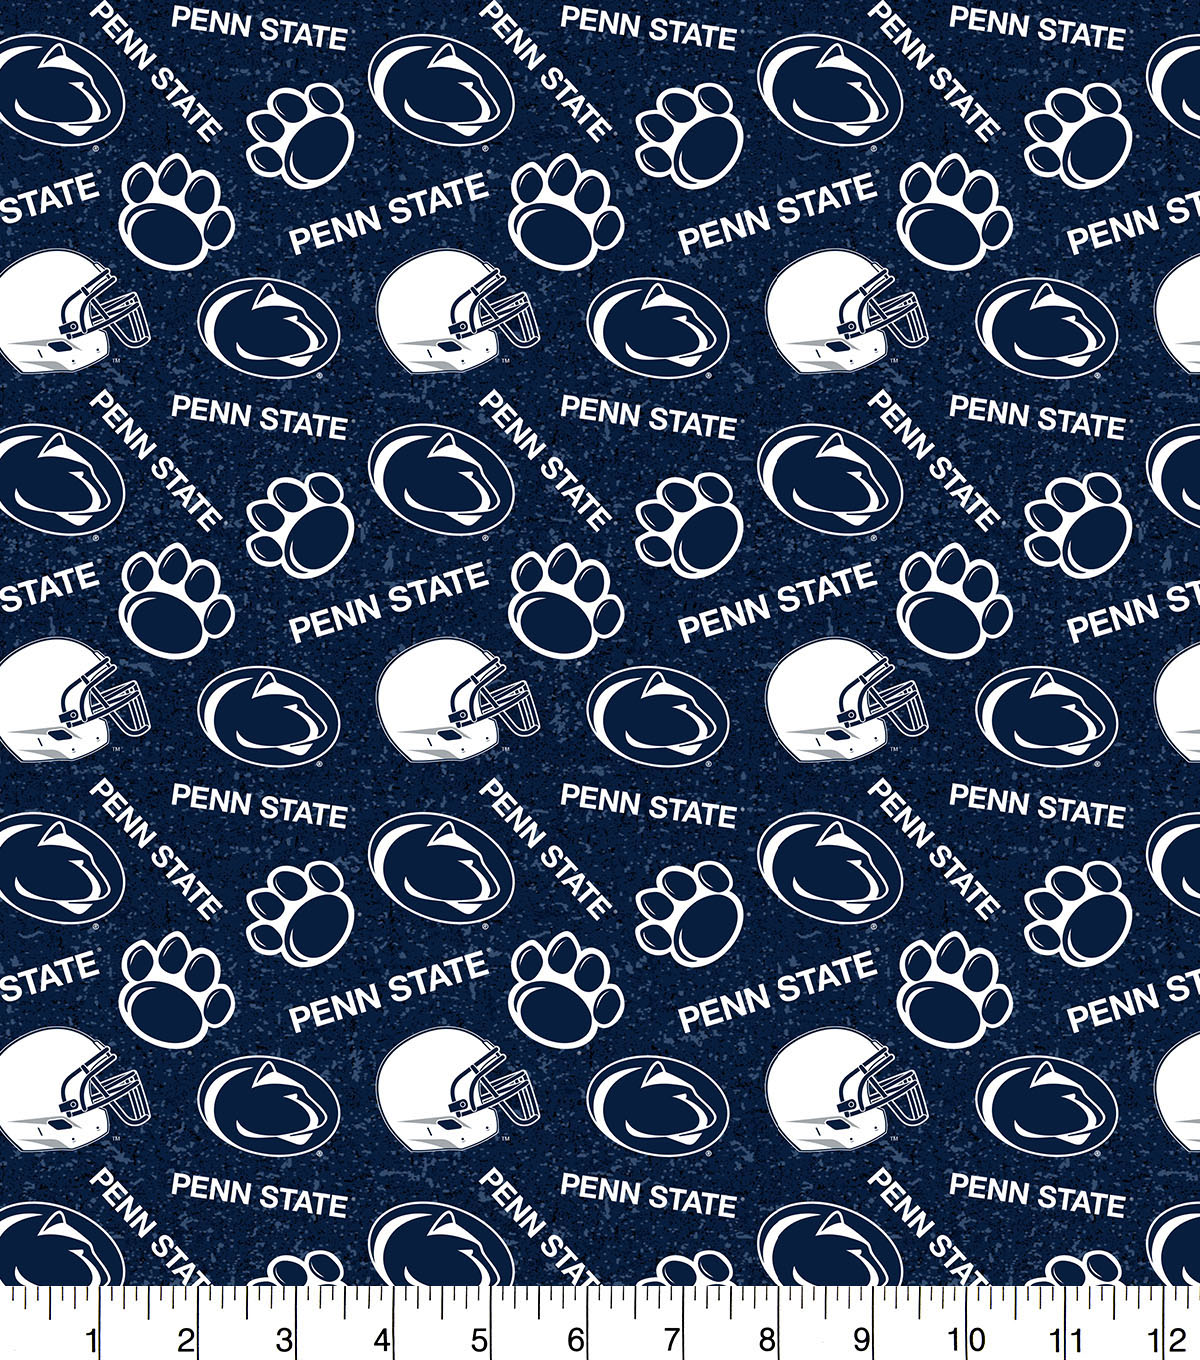 Penn State University Nittany Lions Cotton Fabric-Tone on Tone